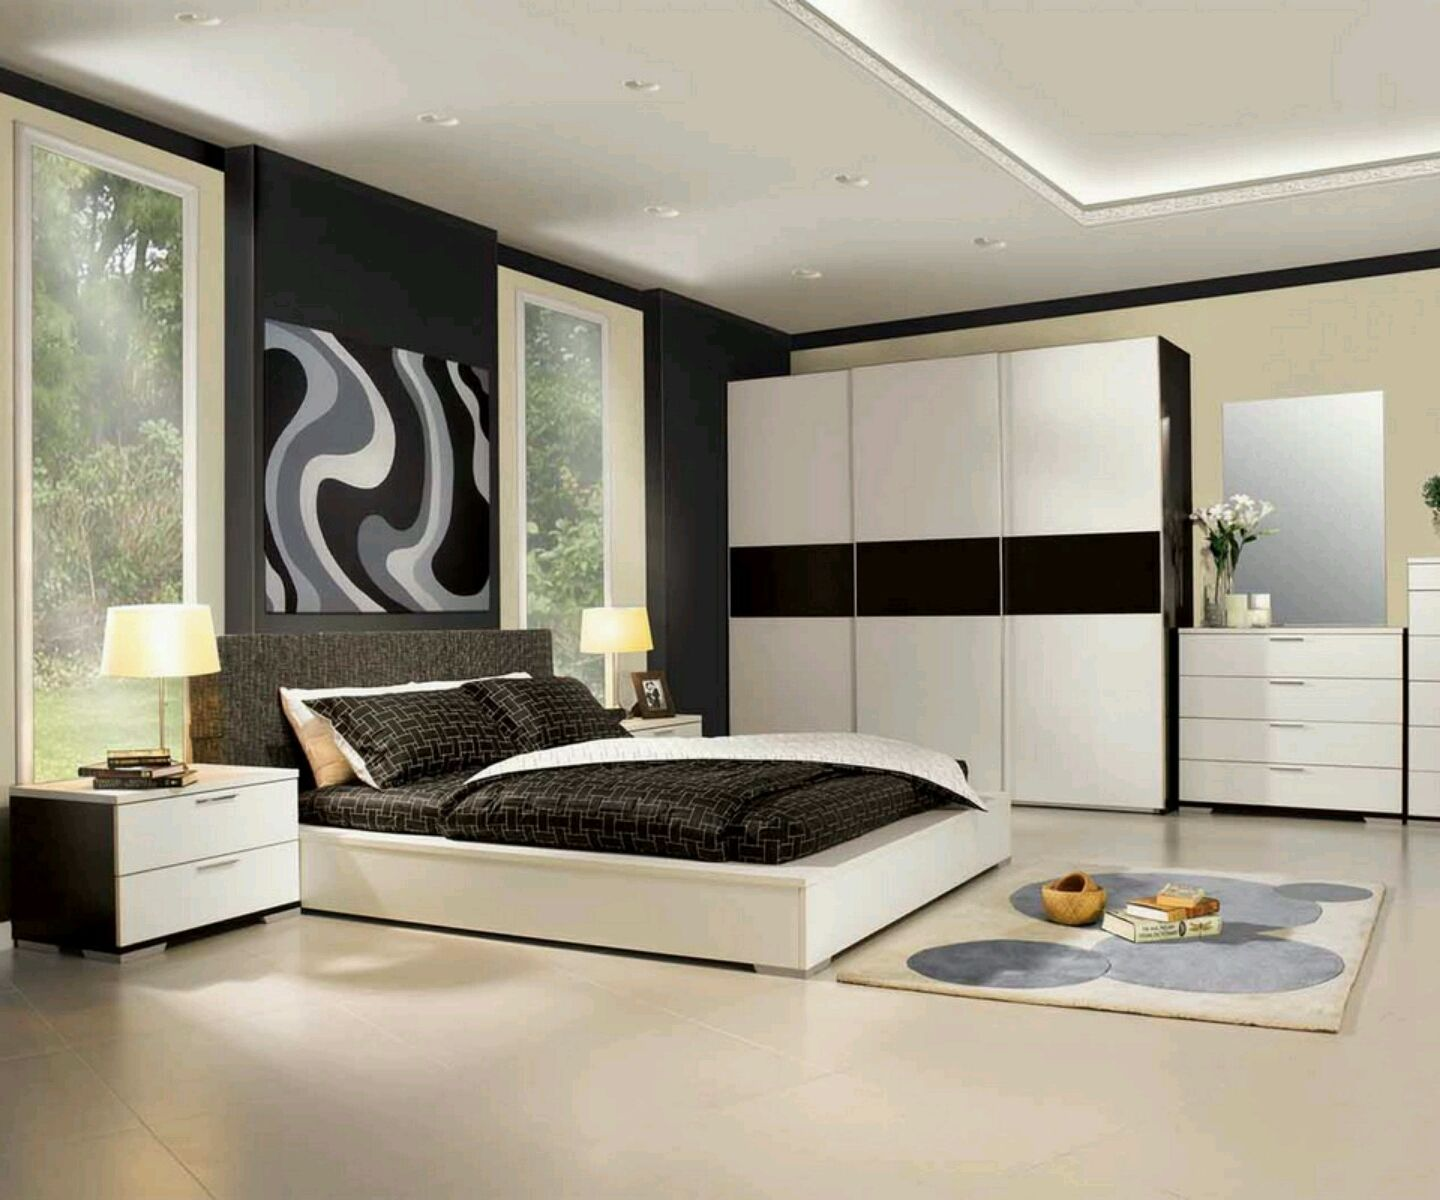 Home Furniture Designs Interesting Modern Bedroom Furniture Design For More Pictures And Design Ideas . Design Inspiration